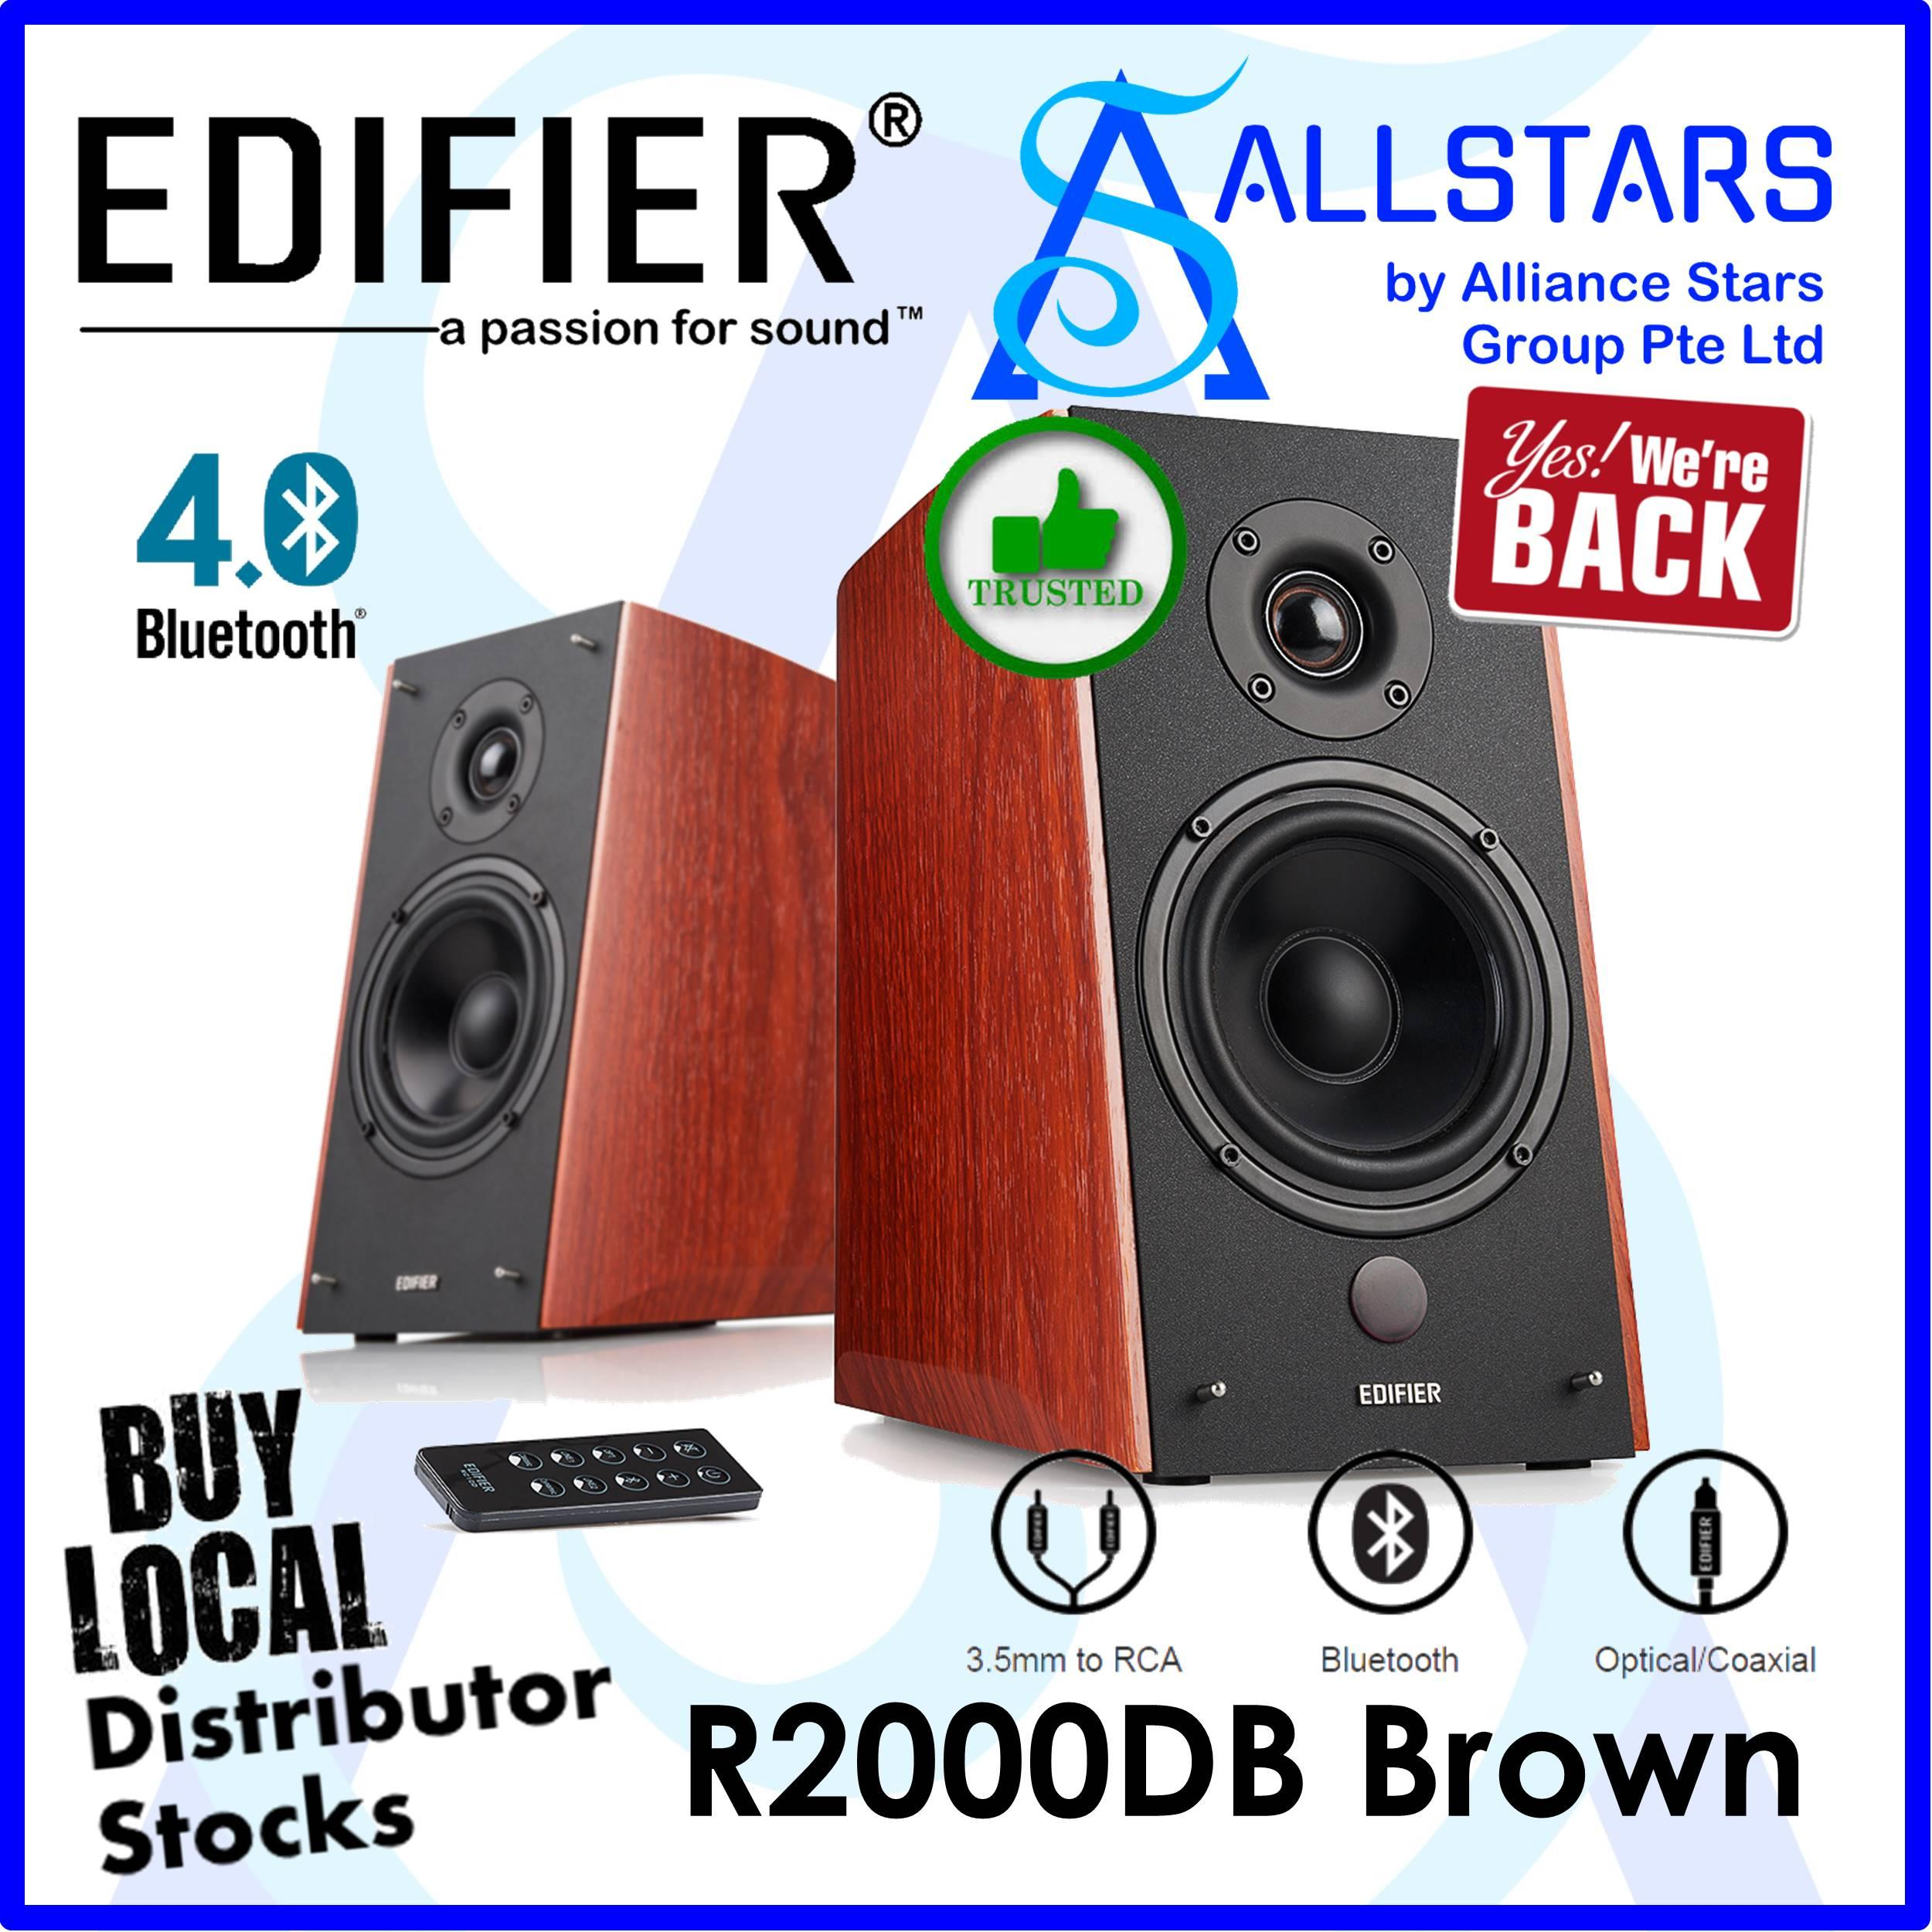 (ALLSTARS : We are Back / SITEX2019 / Black Friday / Cyber Monday / 12.12 PROMO : Edifier R2000DB 2.0 Bookshelf Speaker / Bluetooth (Color : BROWN / 120W) (Warranty : 2years with Local Distributor BanLeong)